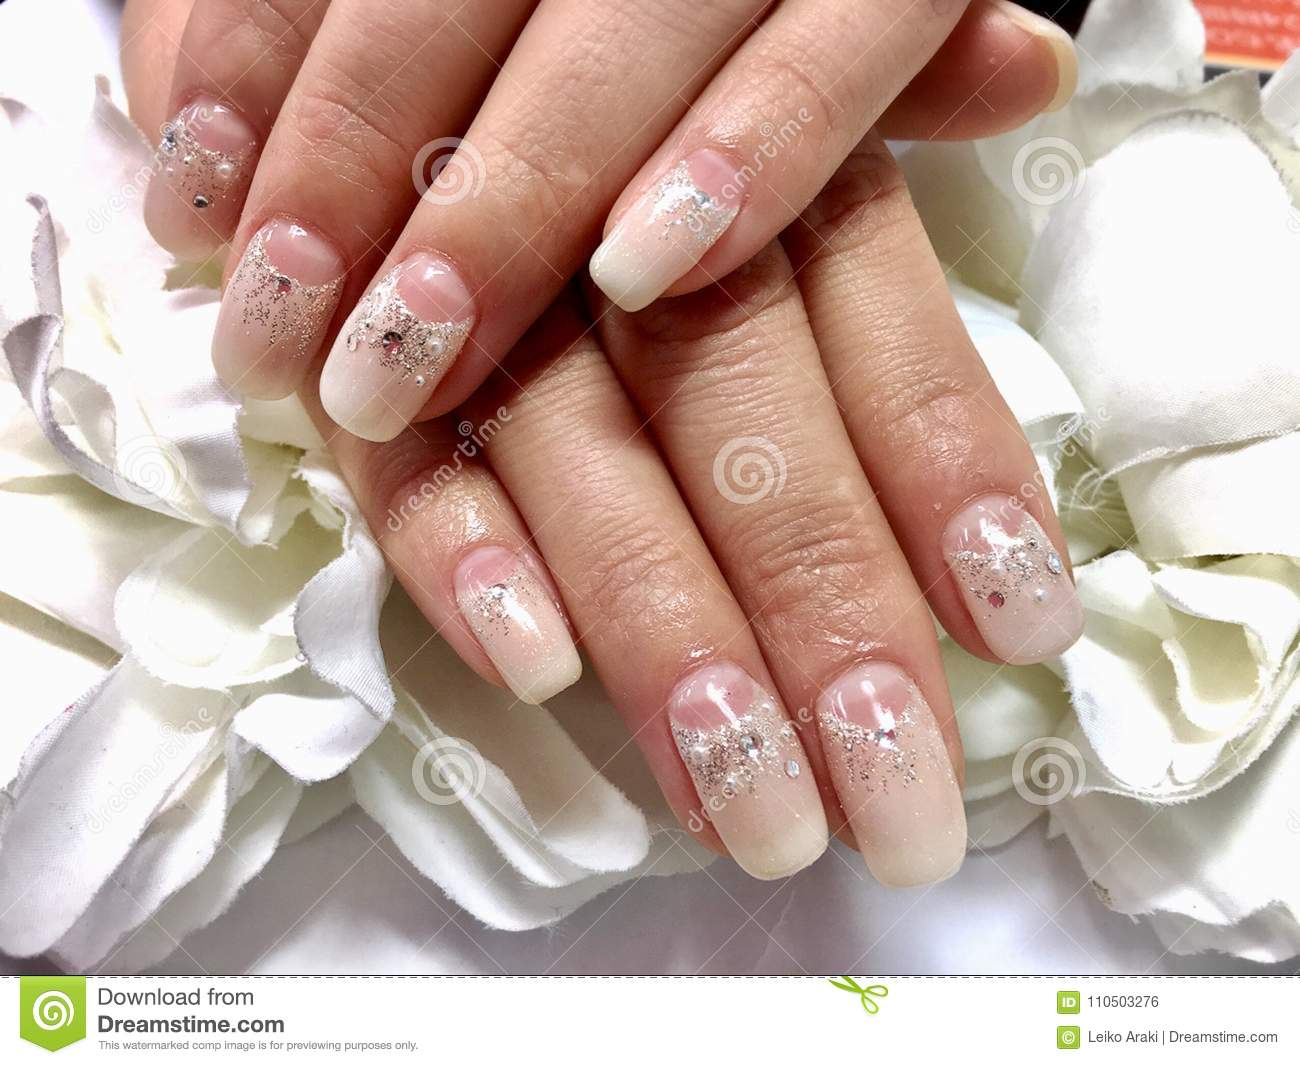 Nails Design For Bride Stock Photo Image Of Beauty 110503276